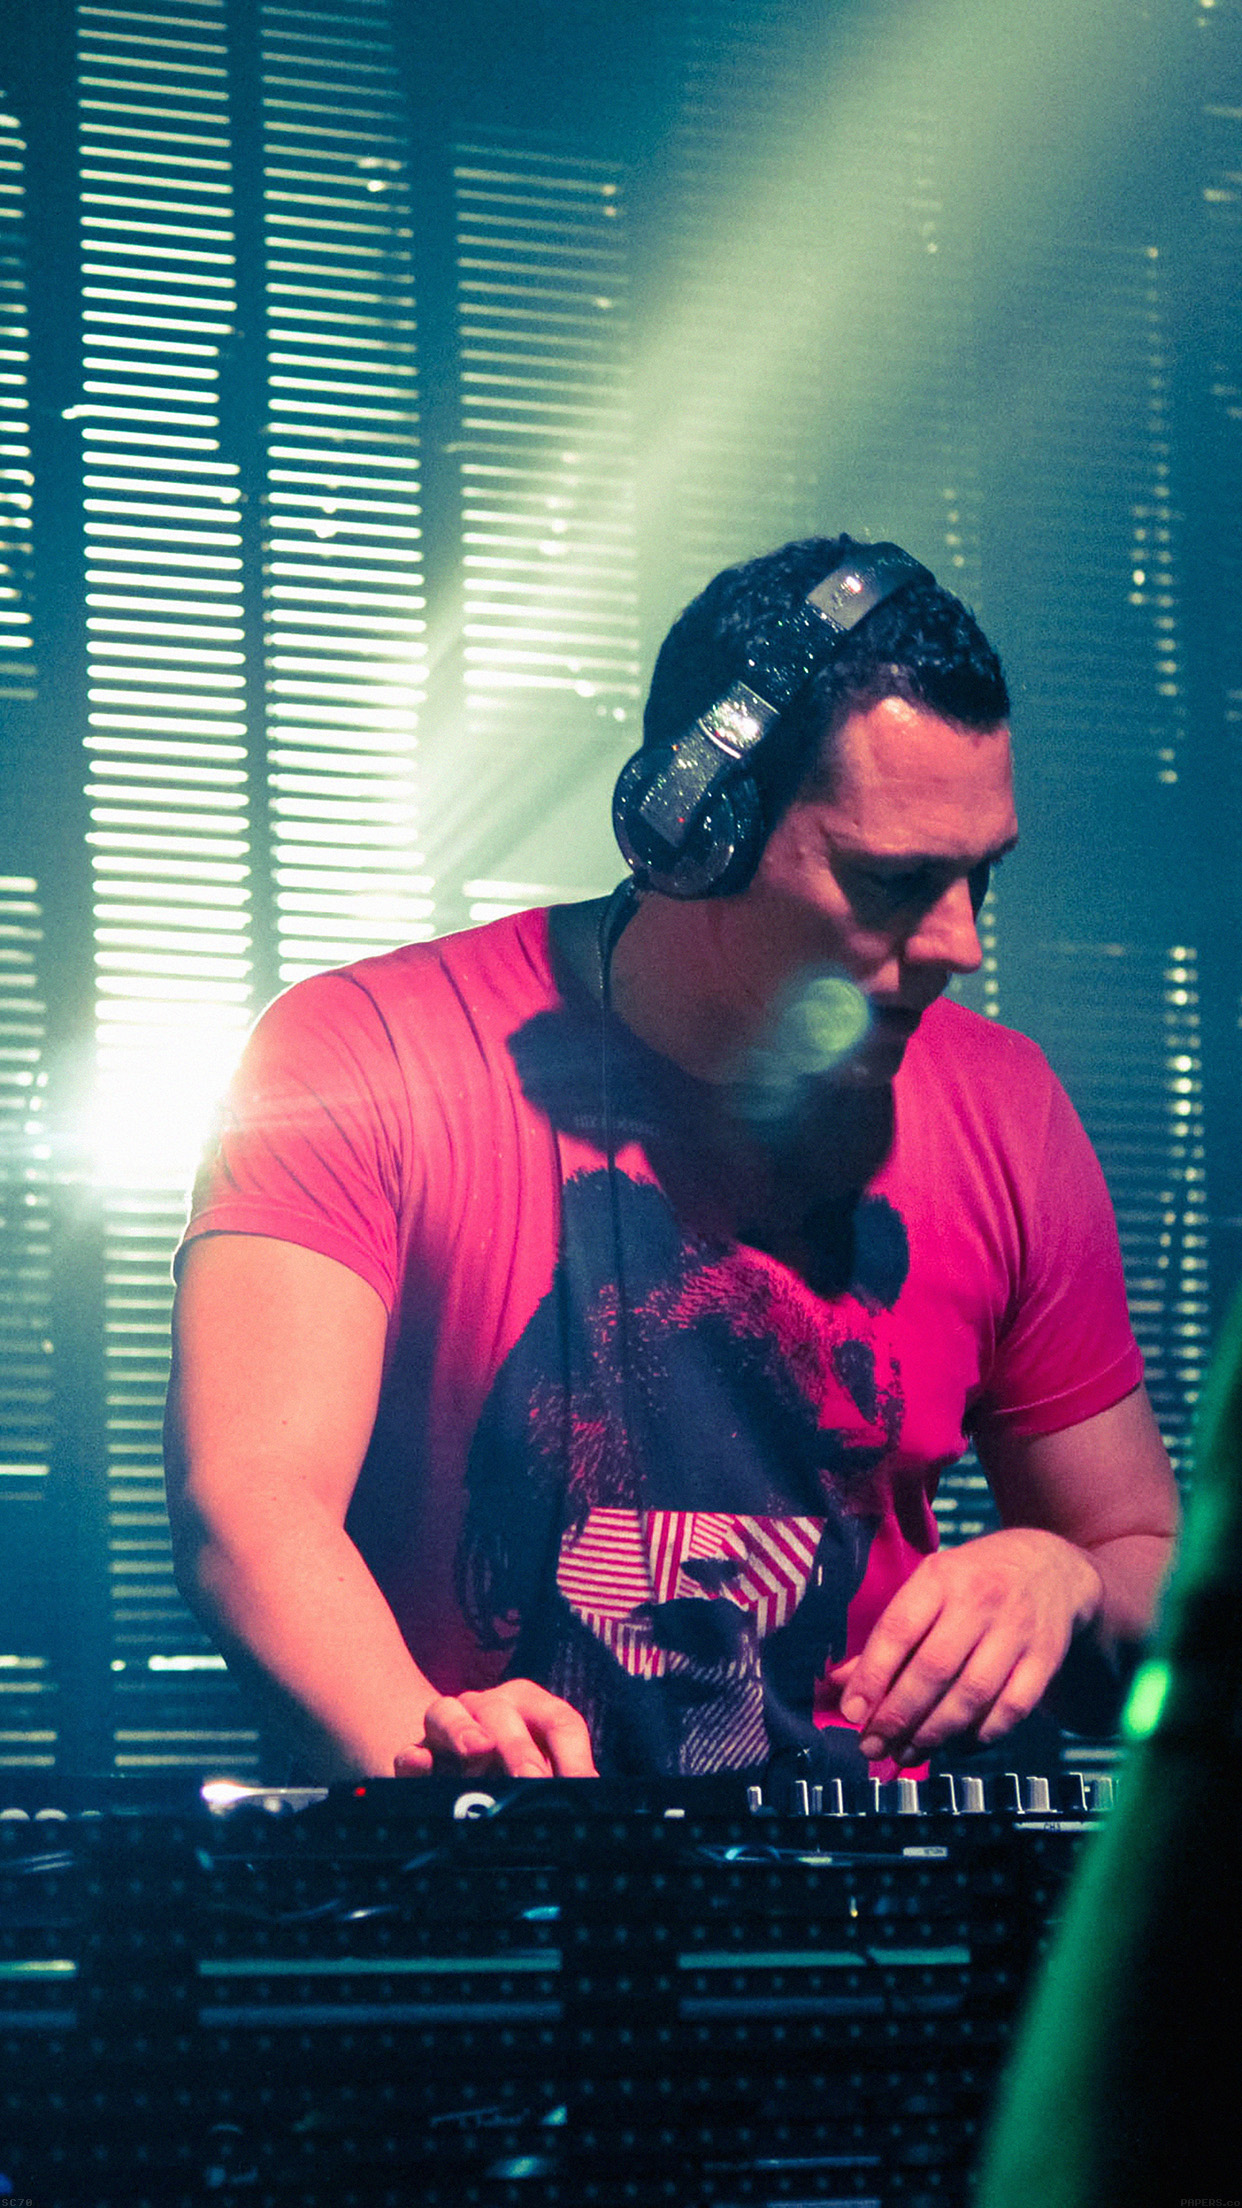 Dutch Dj Record Producer Tiesto Music Android wallpaper